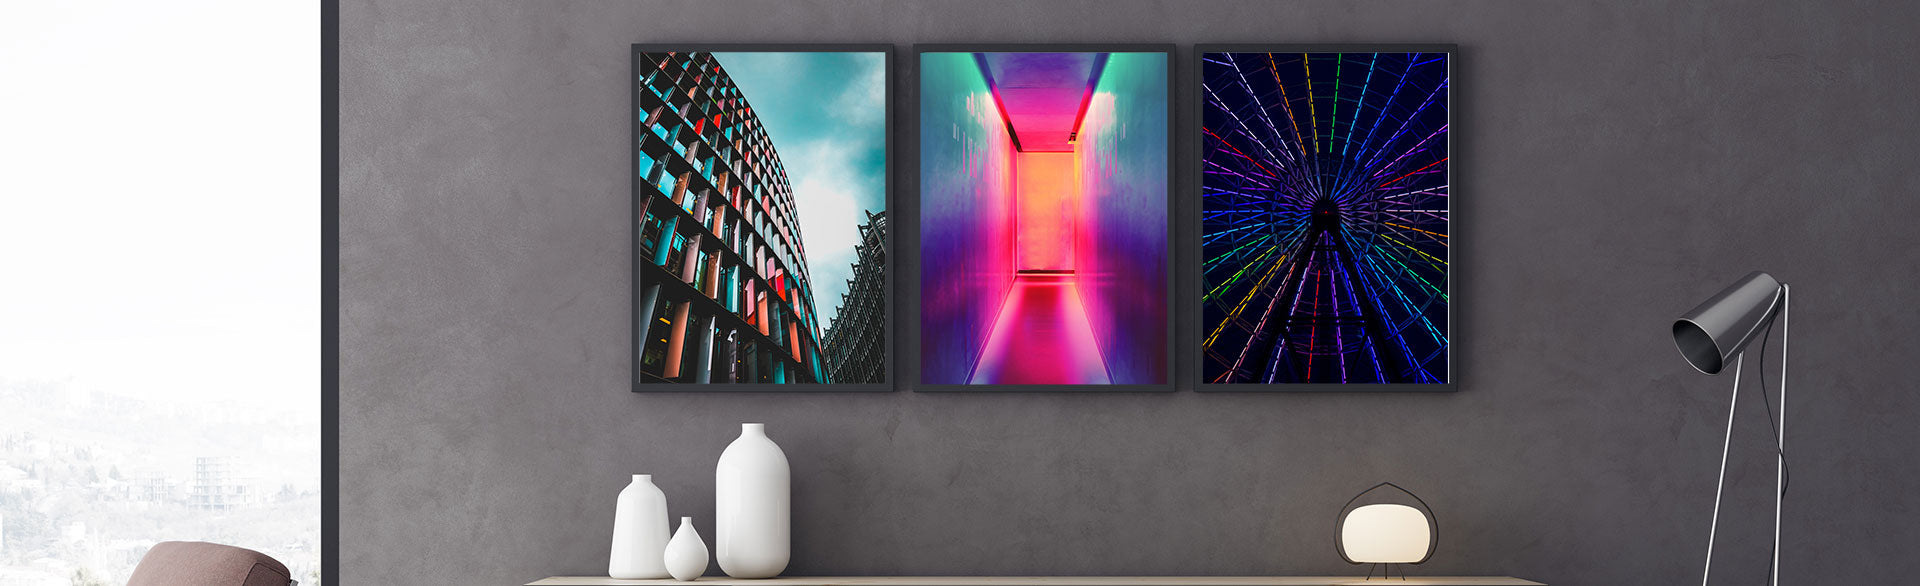 Artstract offers a wide range of colourful poster and canvas prints. Add a touch of colour to your living room, hallway, kitchen or kids room with our colourful funny prints, city prints, animals wall art or illustration prints. Browse our collections and start creating your stylish wall art gallery!